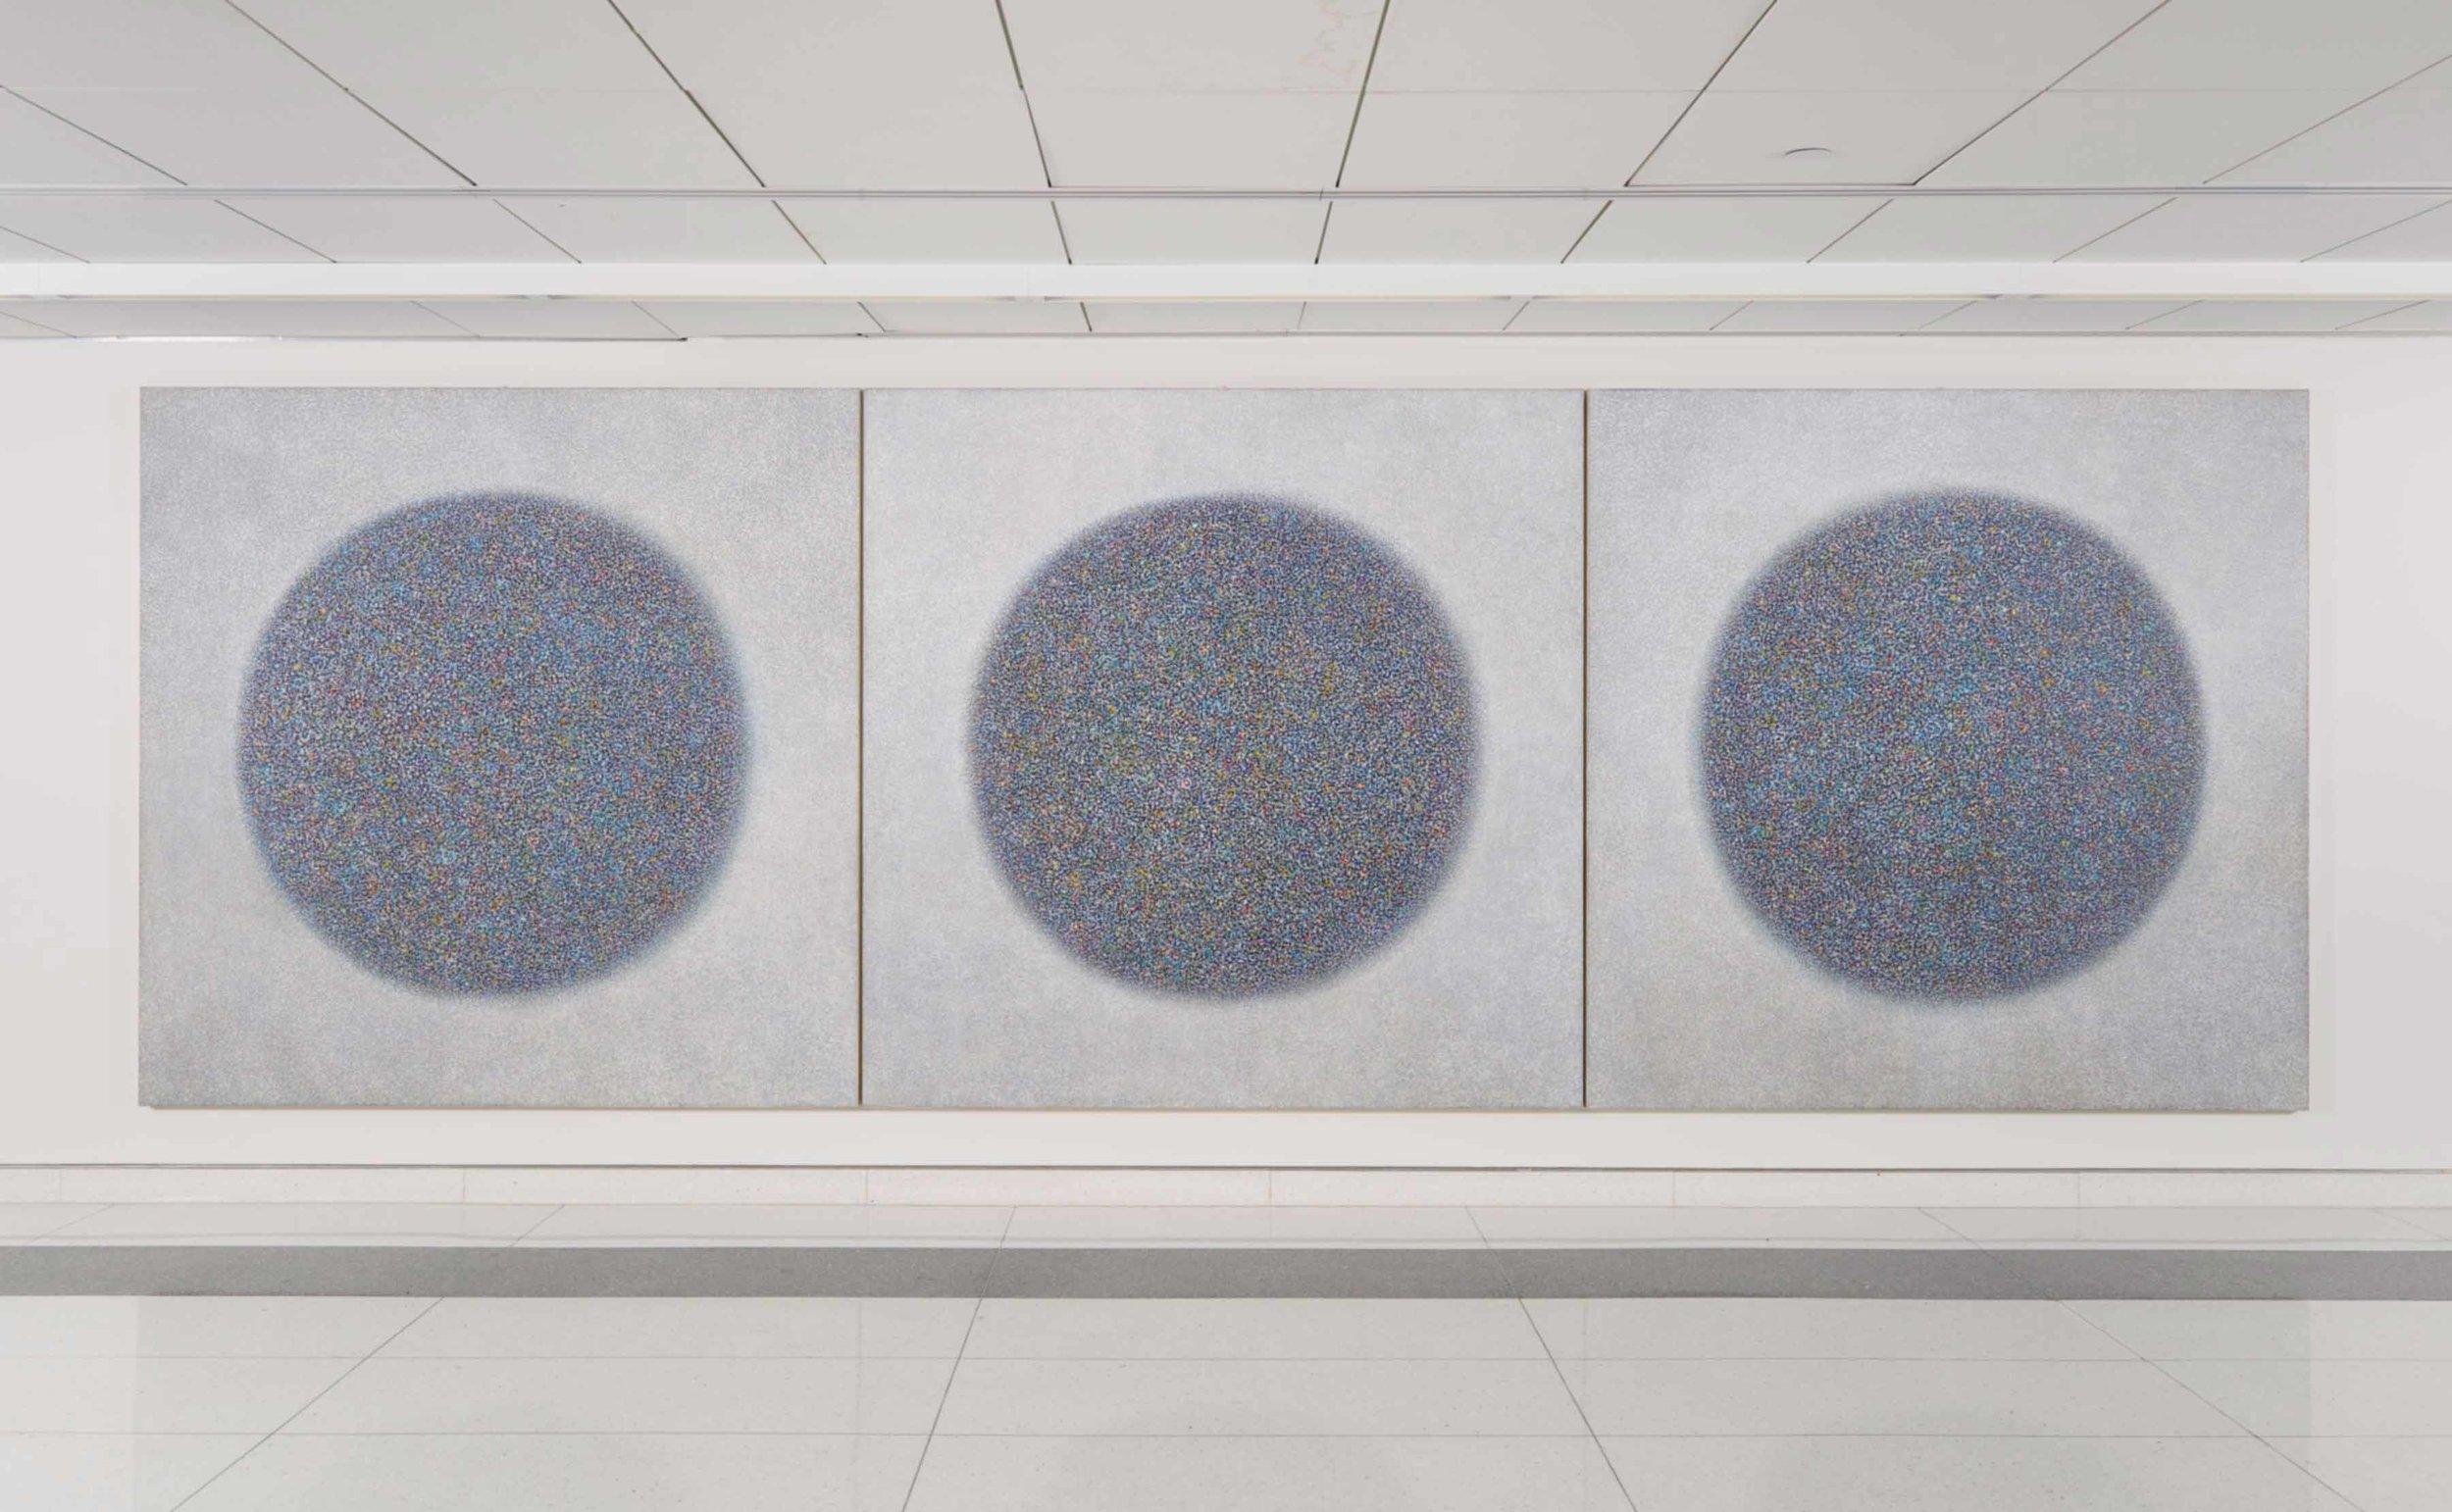 Triptych of three mainly blue circles in a pointillism style on a white background.